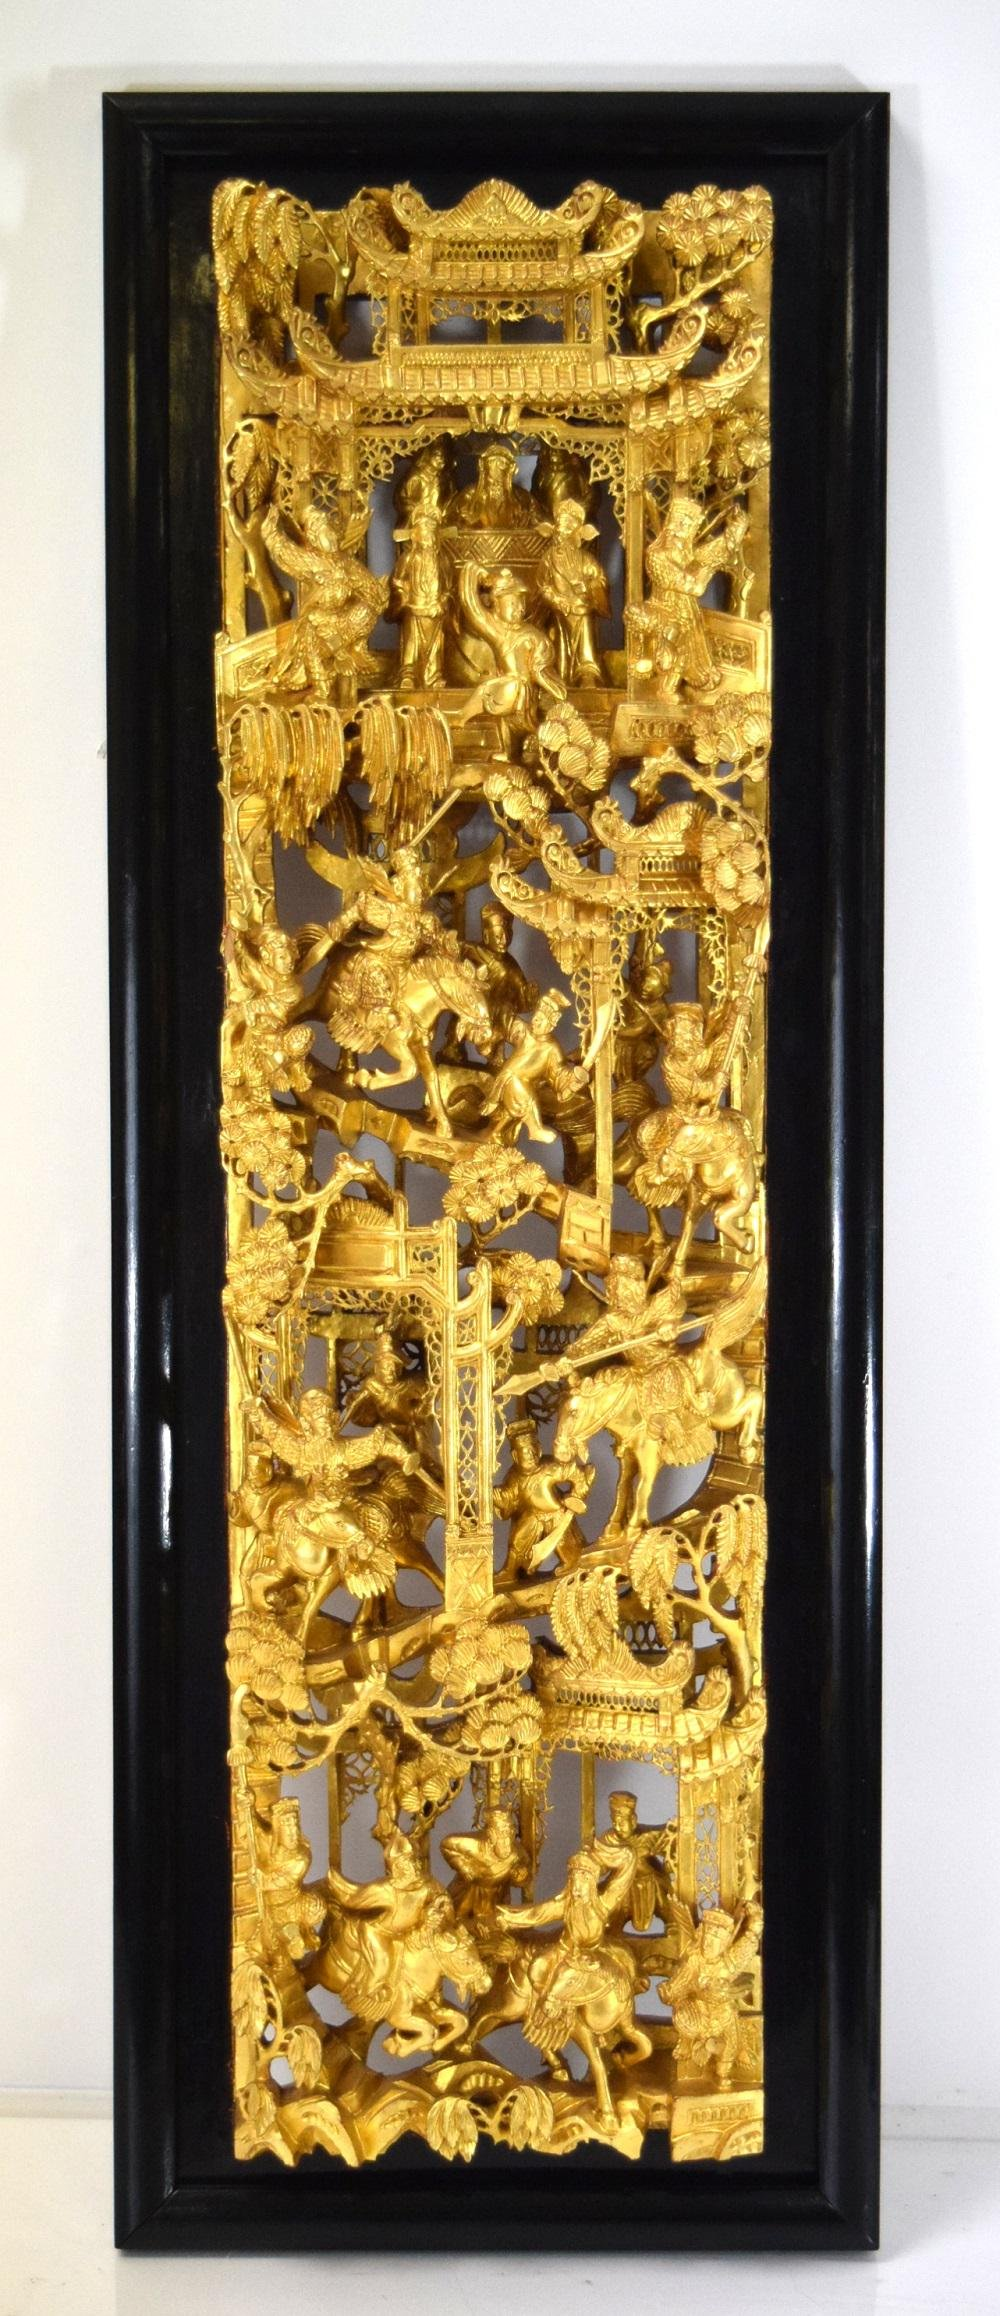 Very Elaborate 19th C. Chinese Gold Gilt Wood Carving